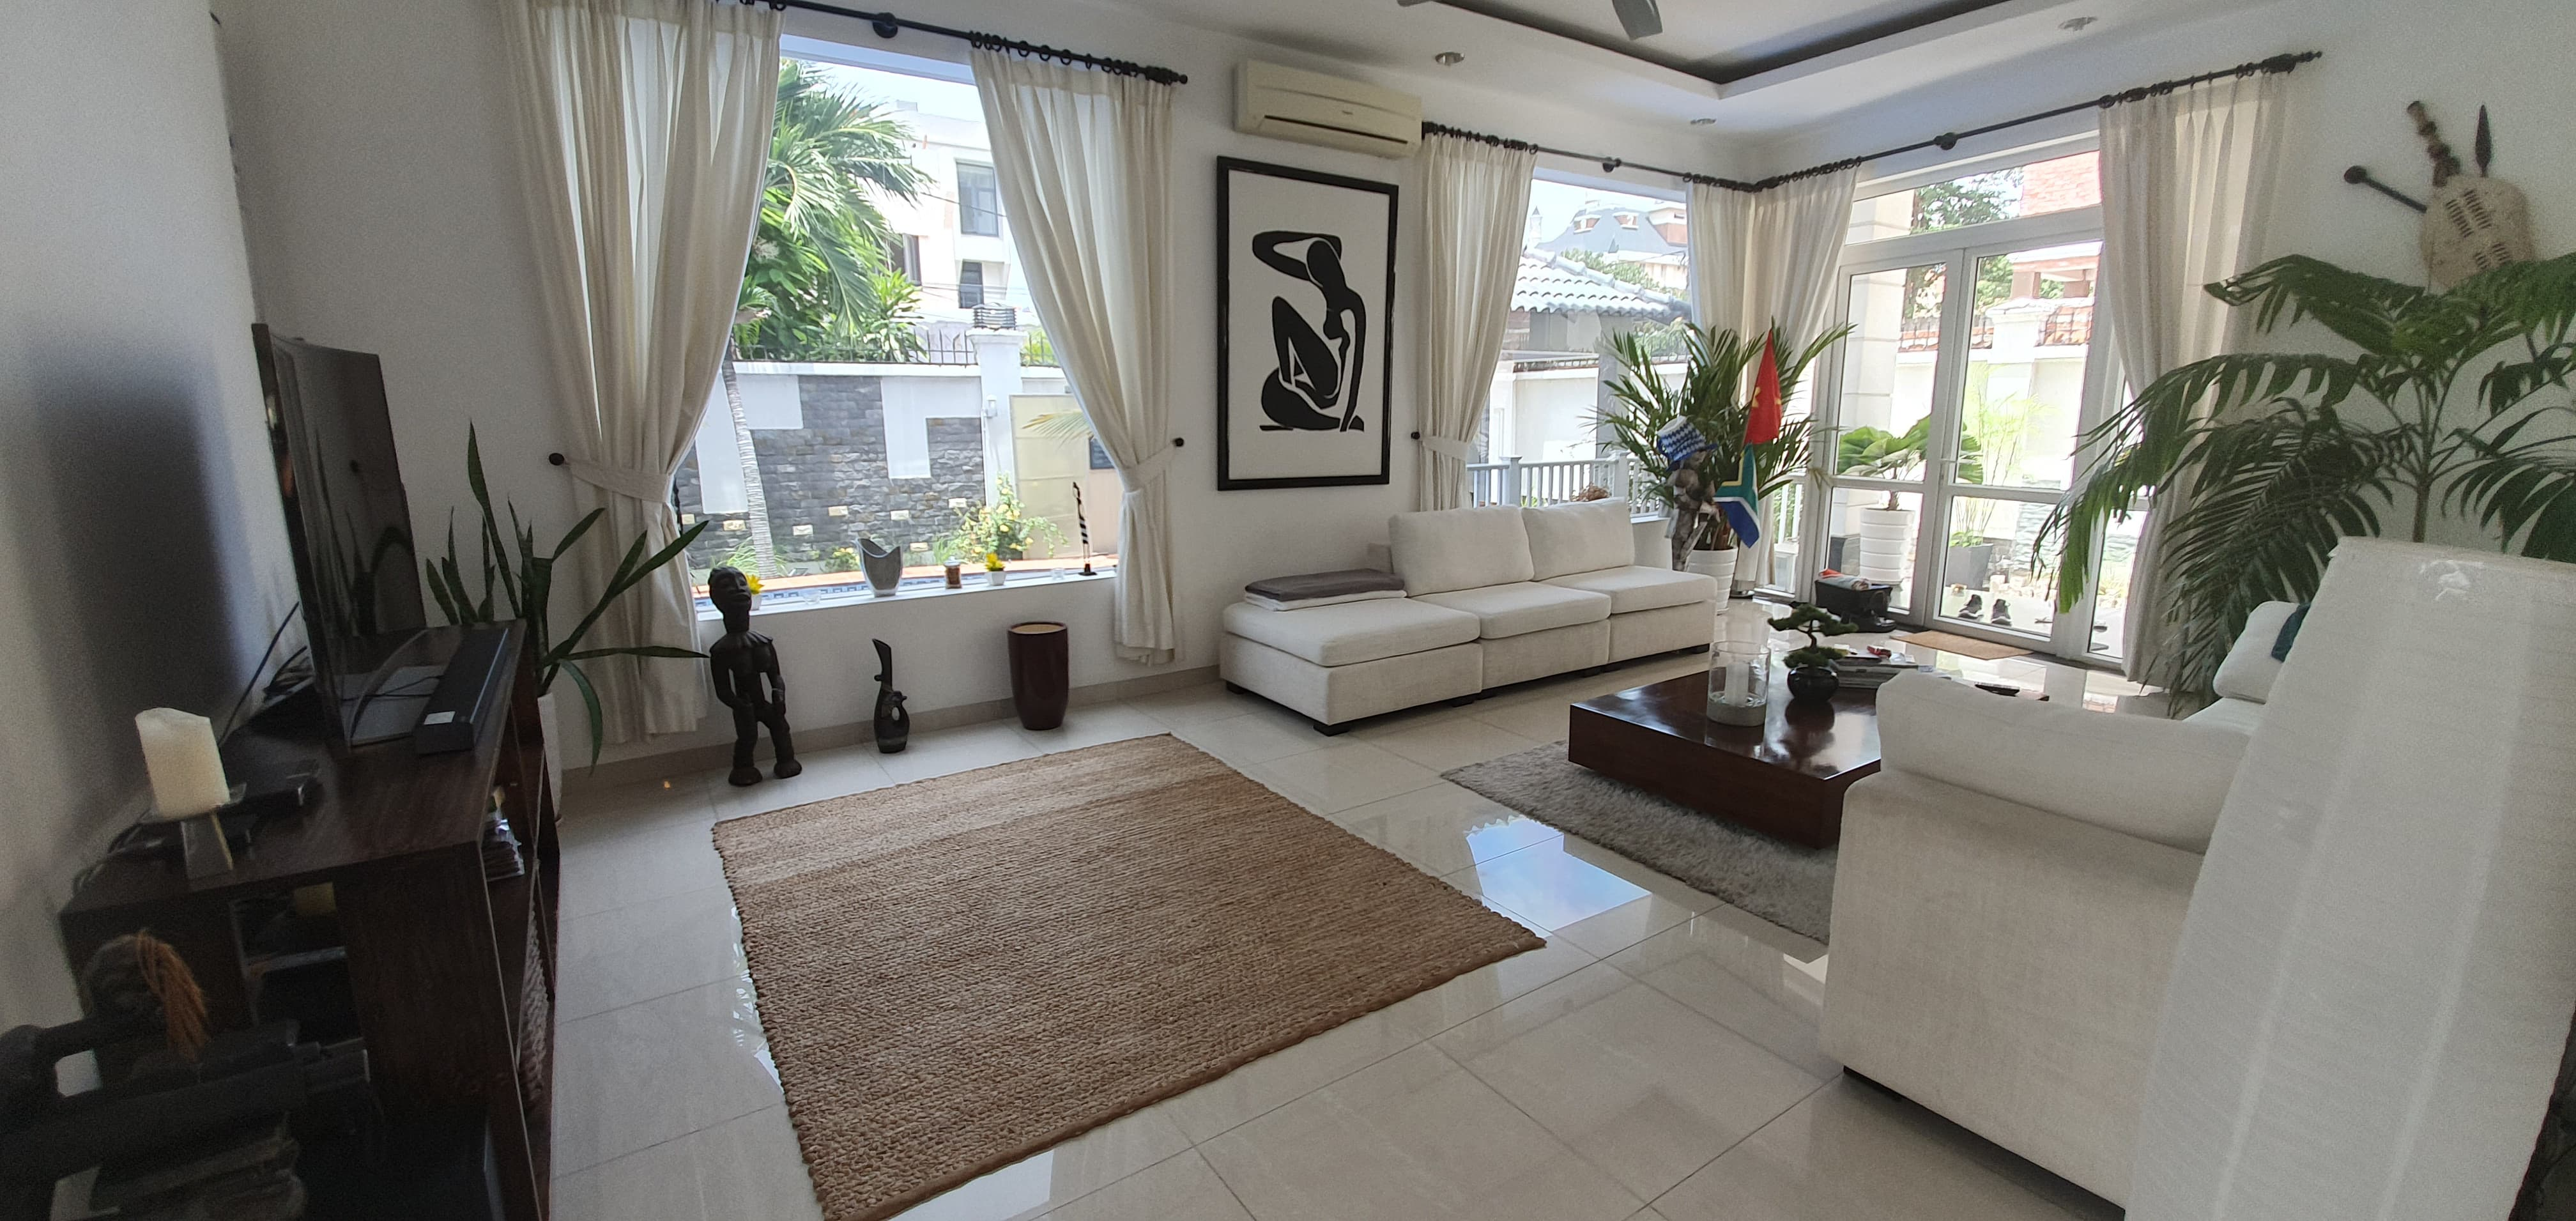 Beautiful Villa Thao Dien for rent in Thao Dien.